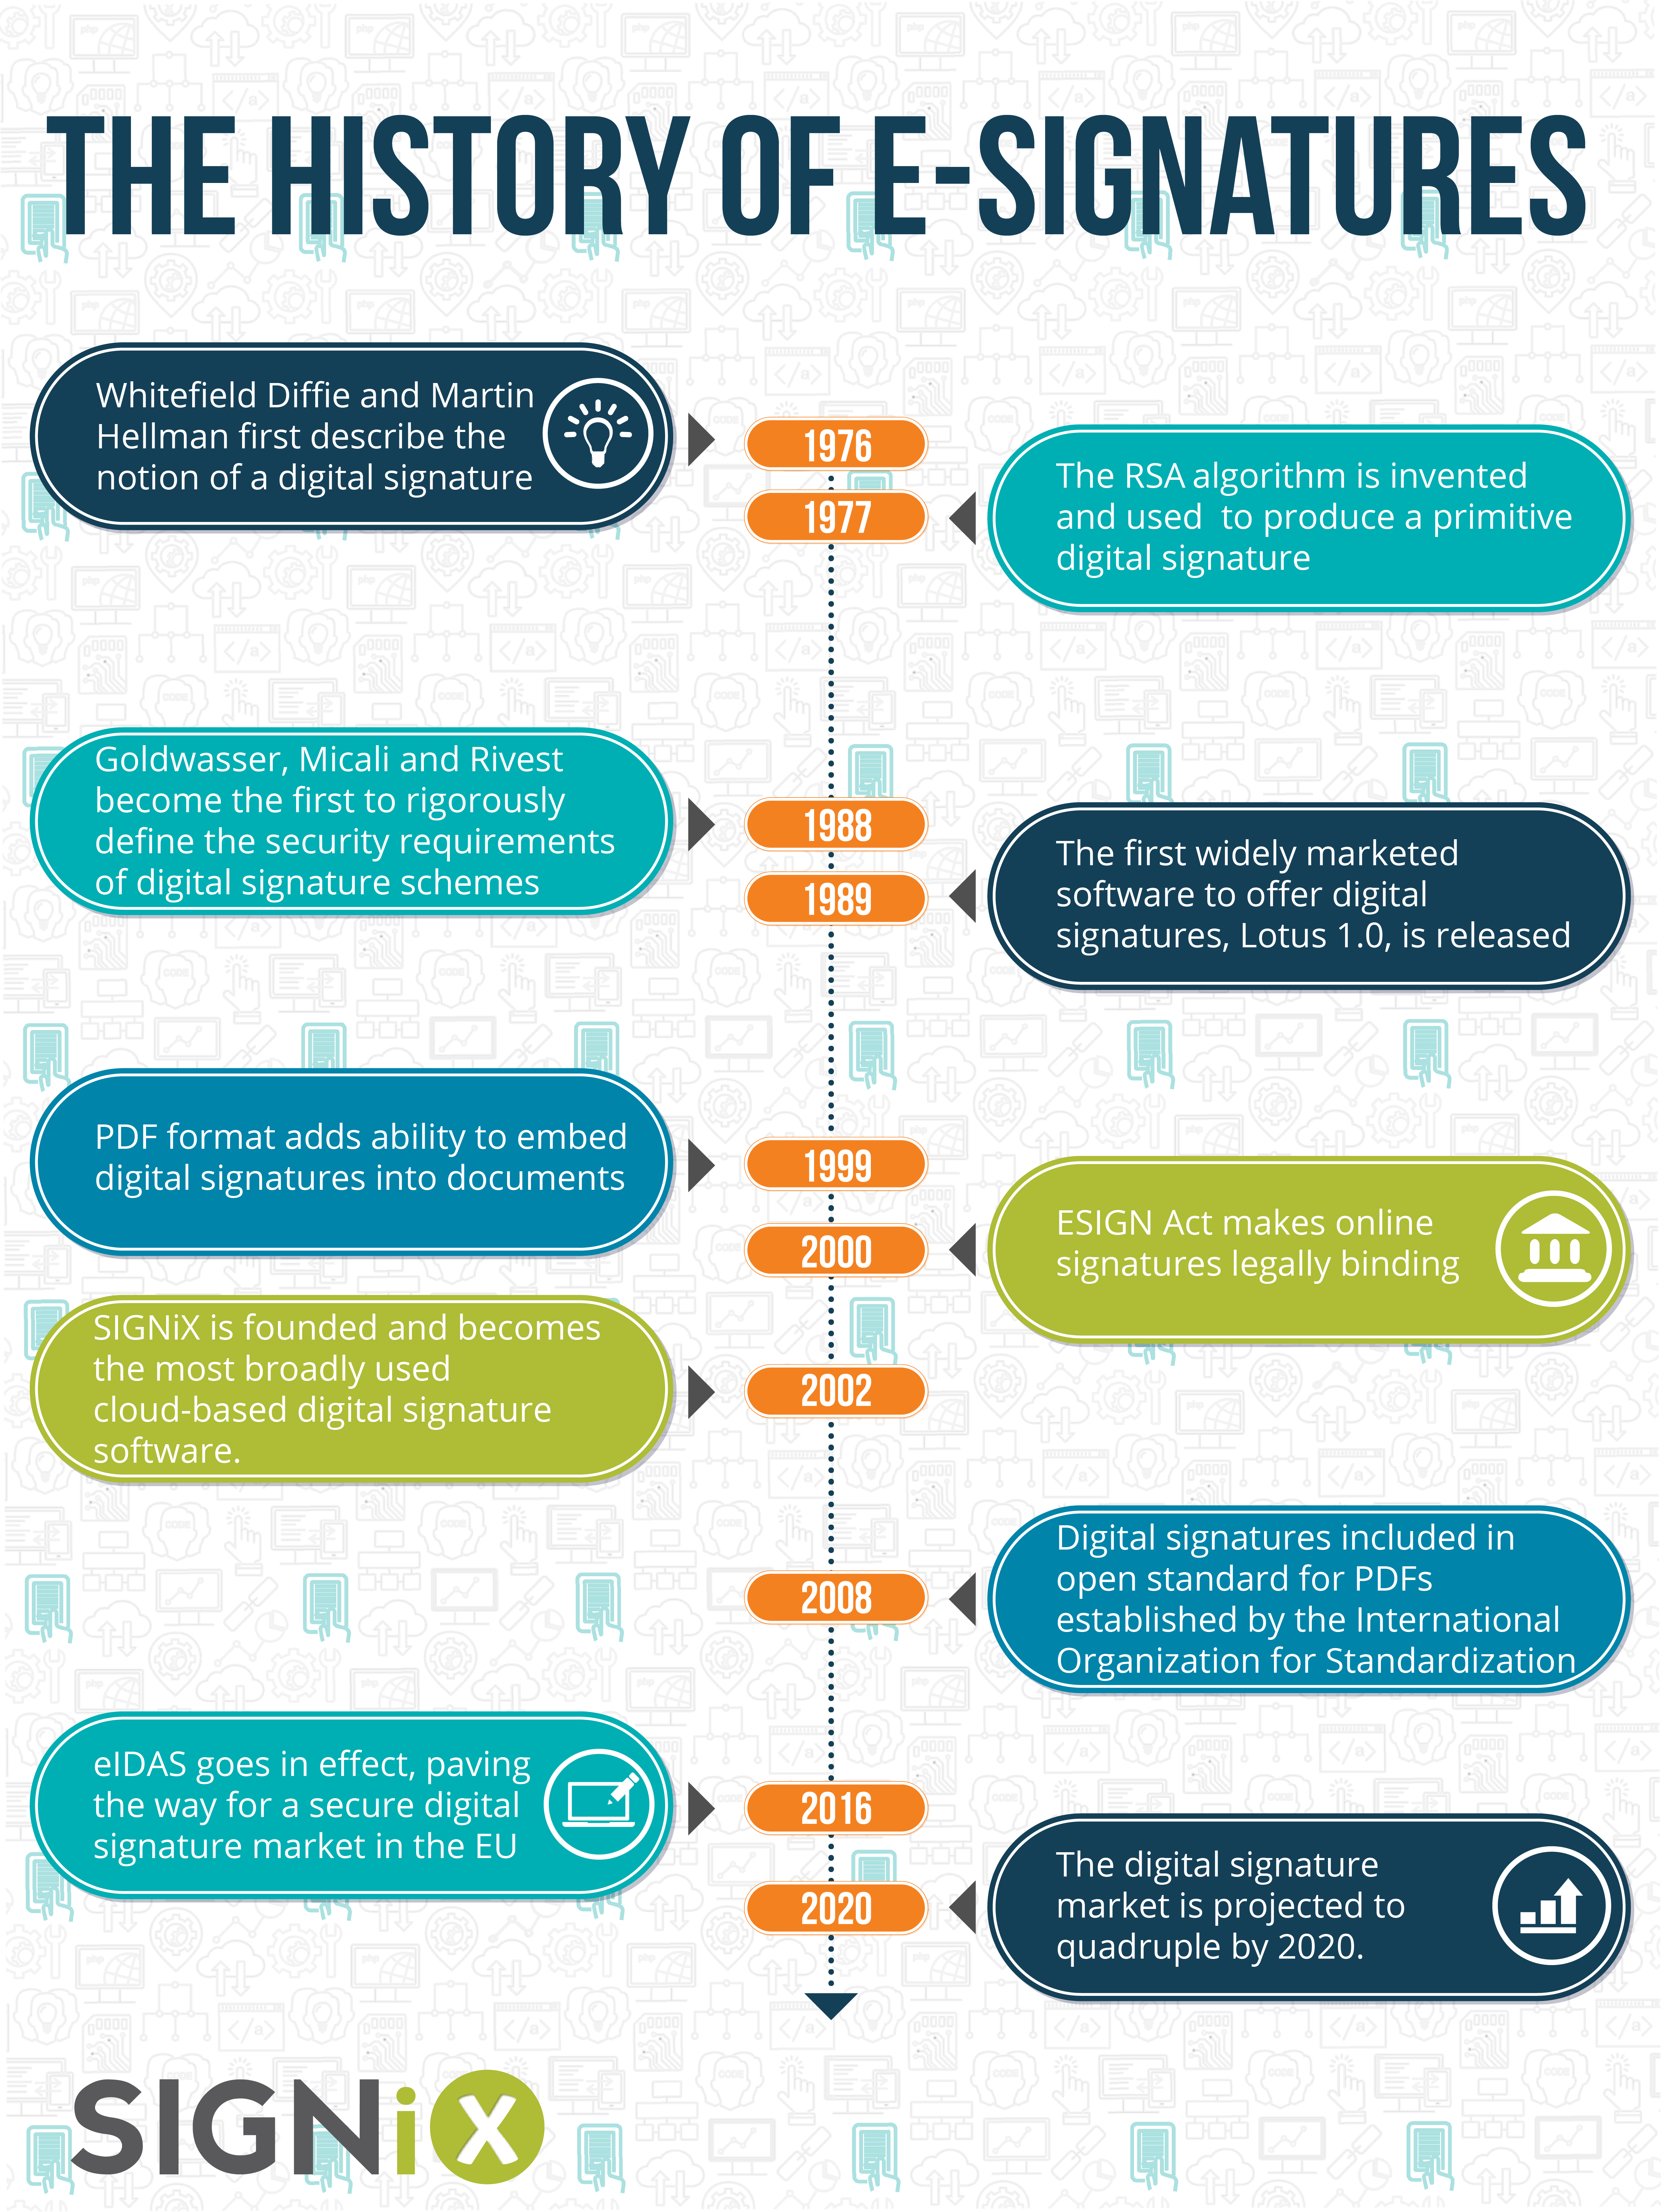 [Infographic] The History of E-Signatures Gets Another Look